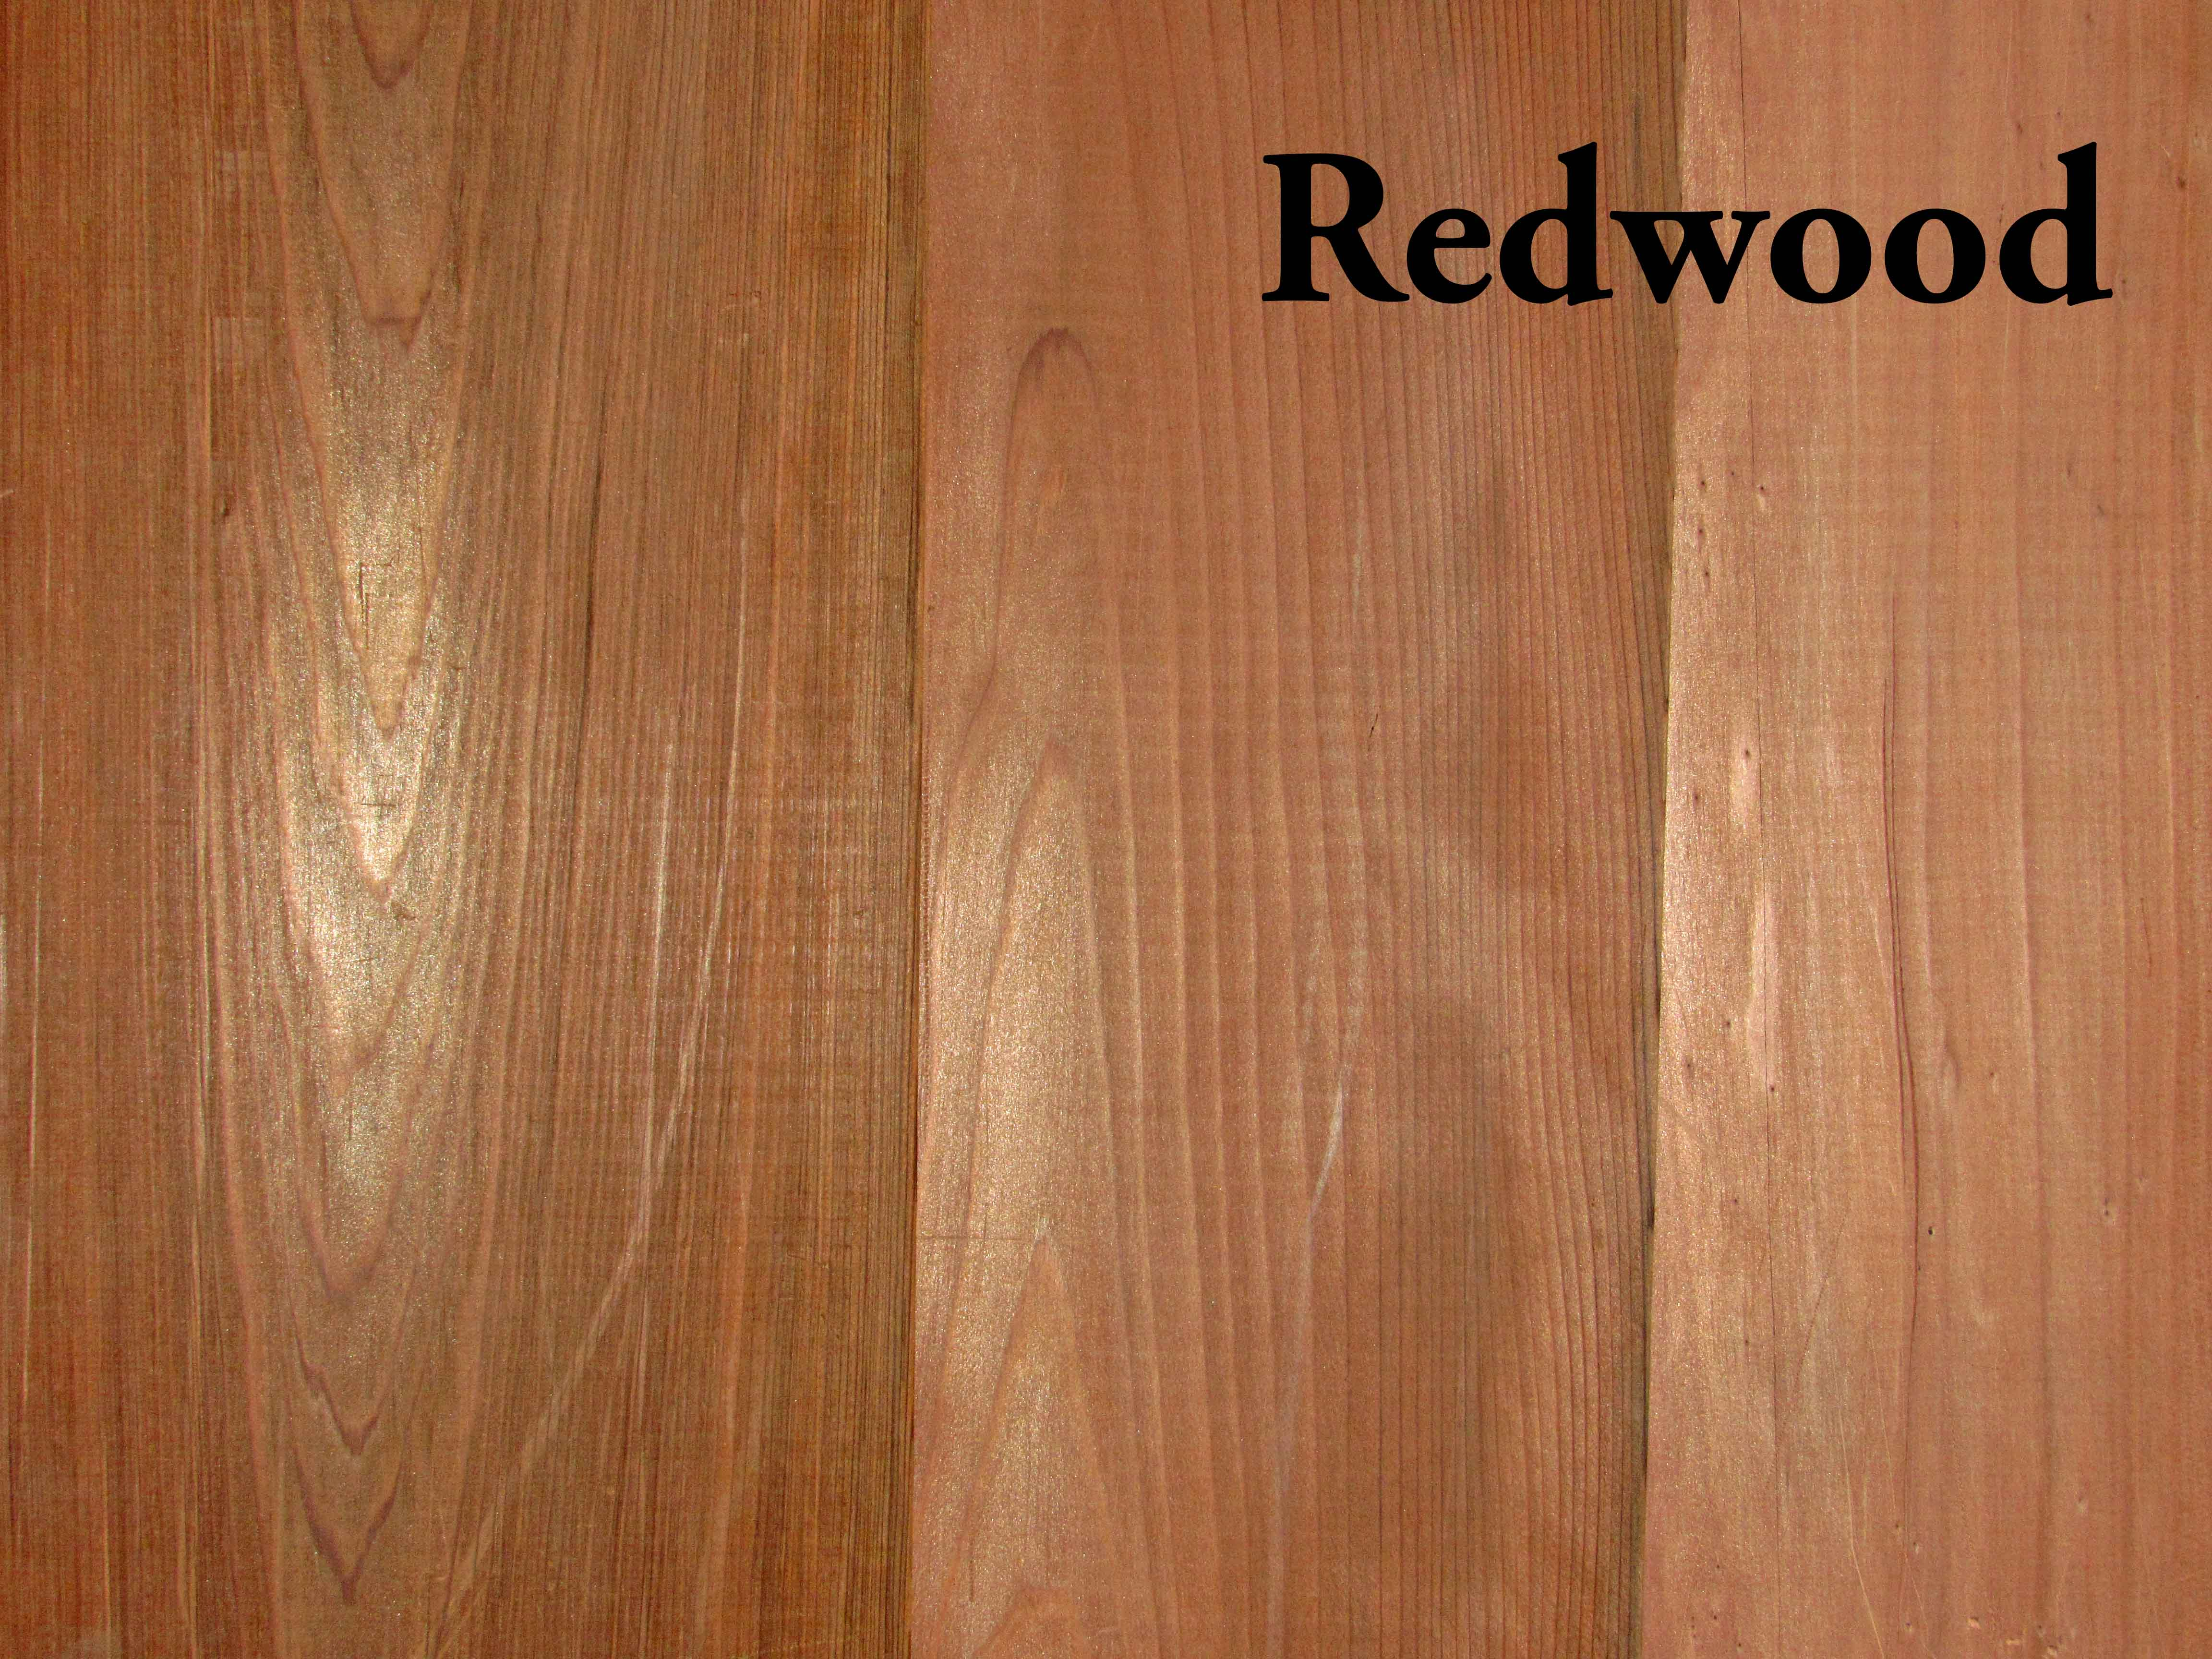 Redwood Archives Capitol City Lumber